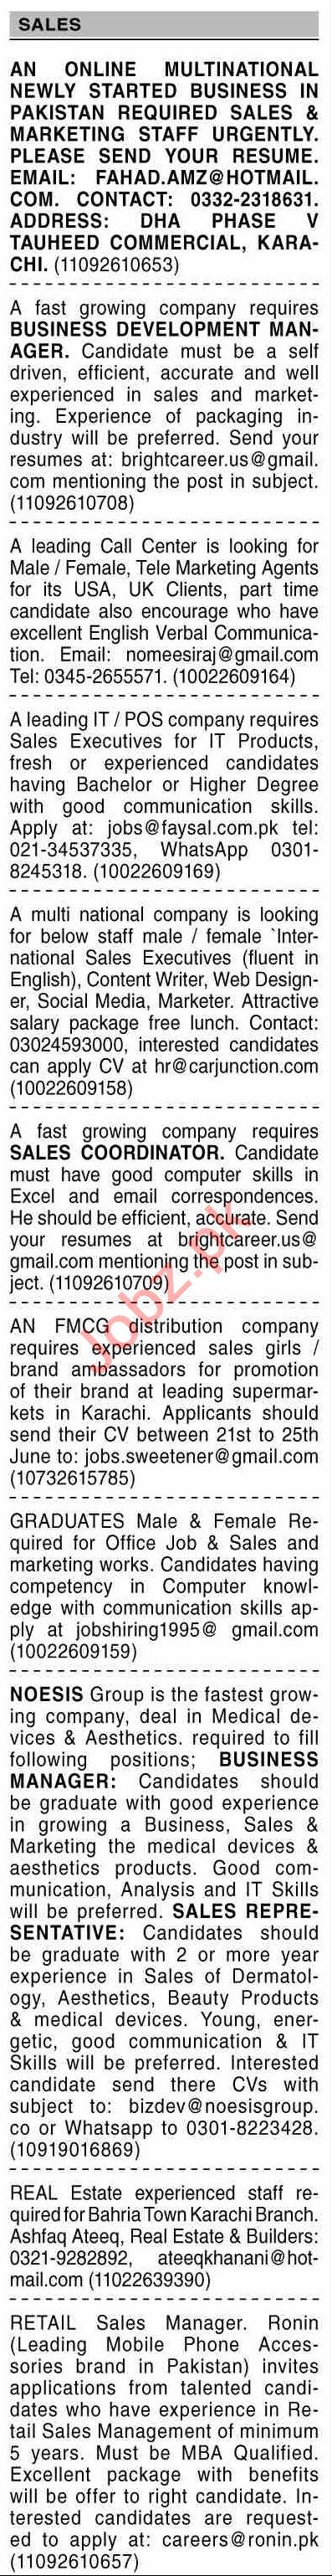 Dawn Sunday Classified Ads 20 June 2021 for Sales Staff